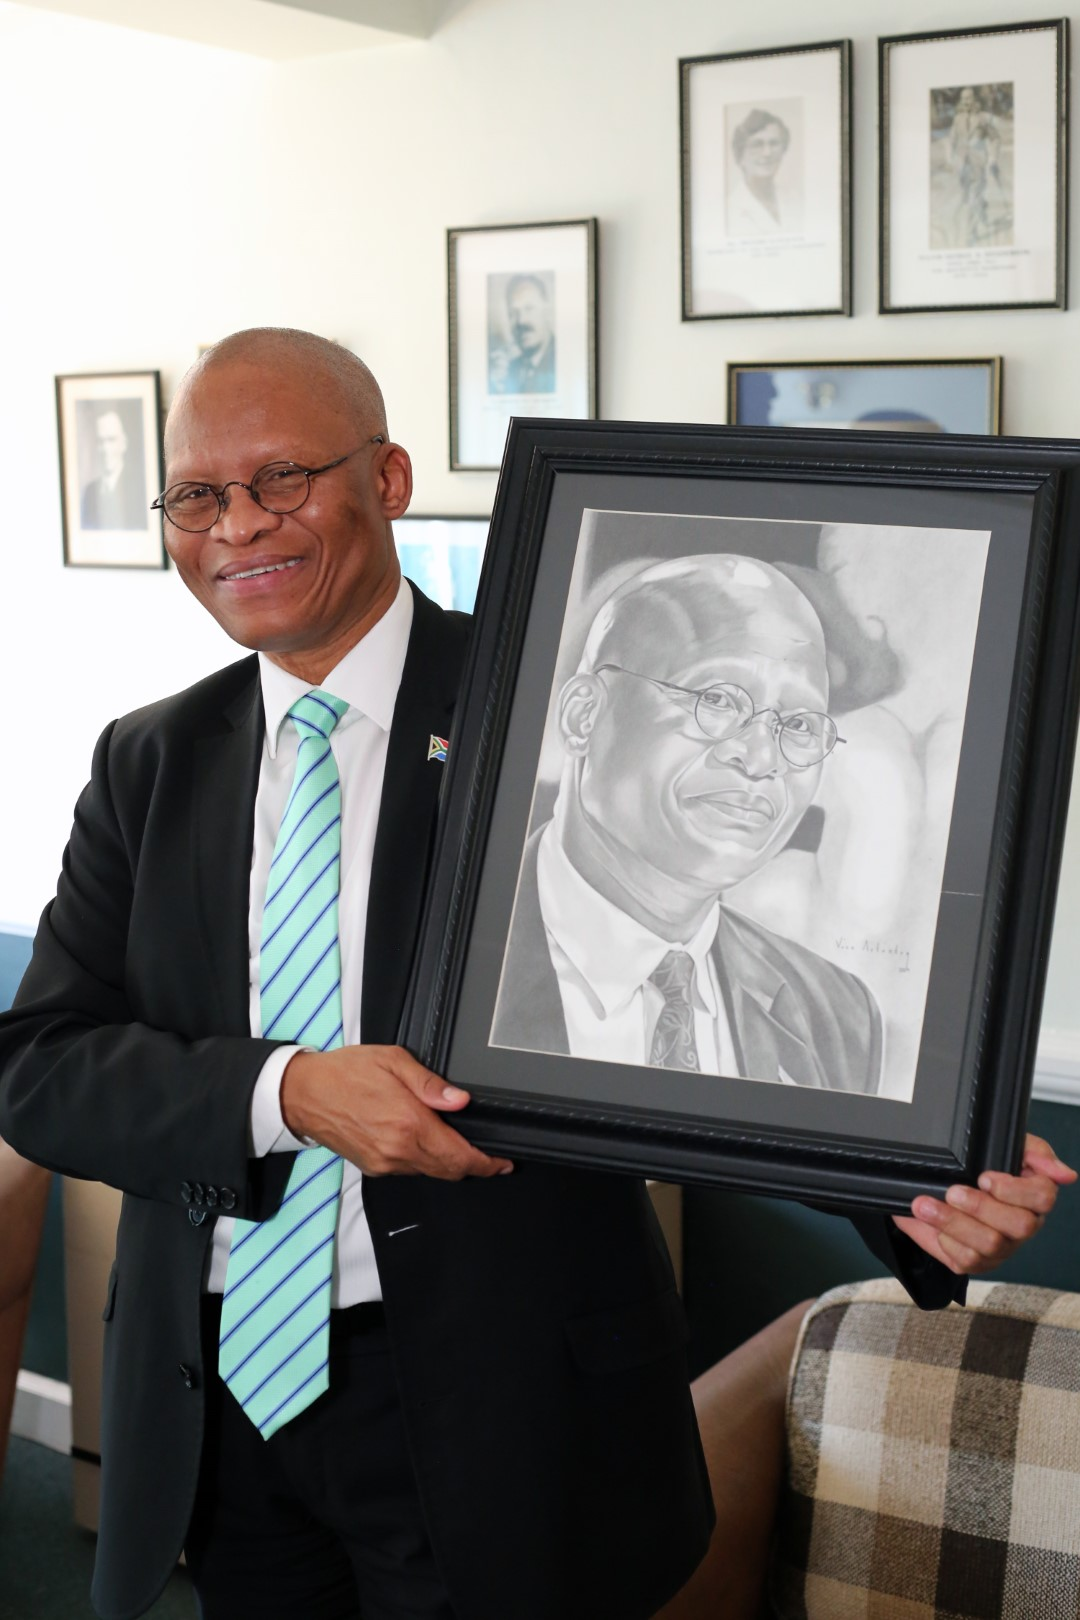 Chancellor Chief Justice Mogoeng Mogoeng is thrilled to recieve a framed sketching of himself